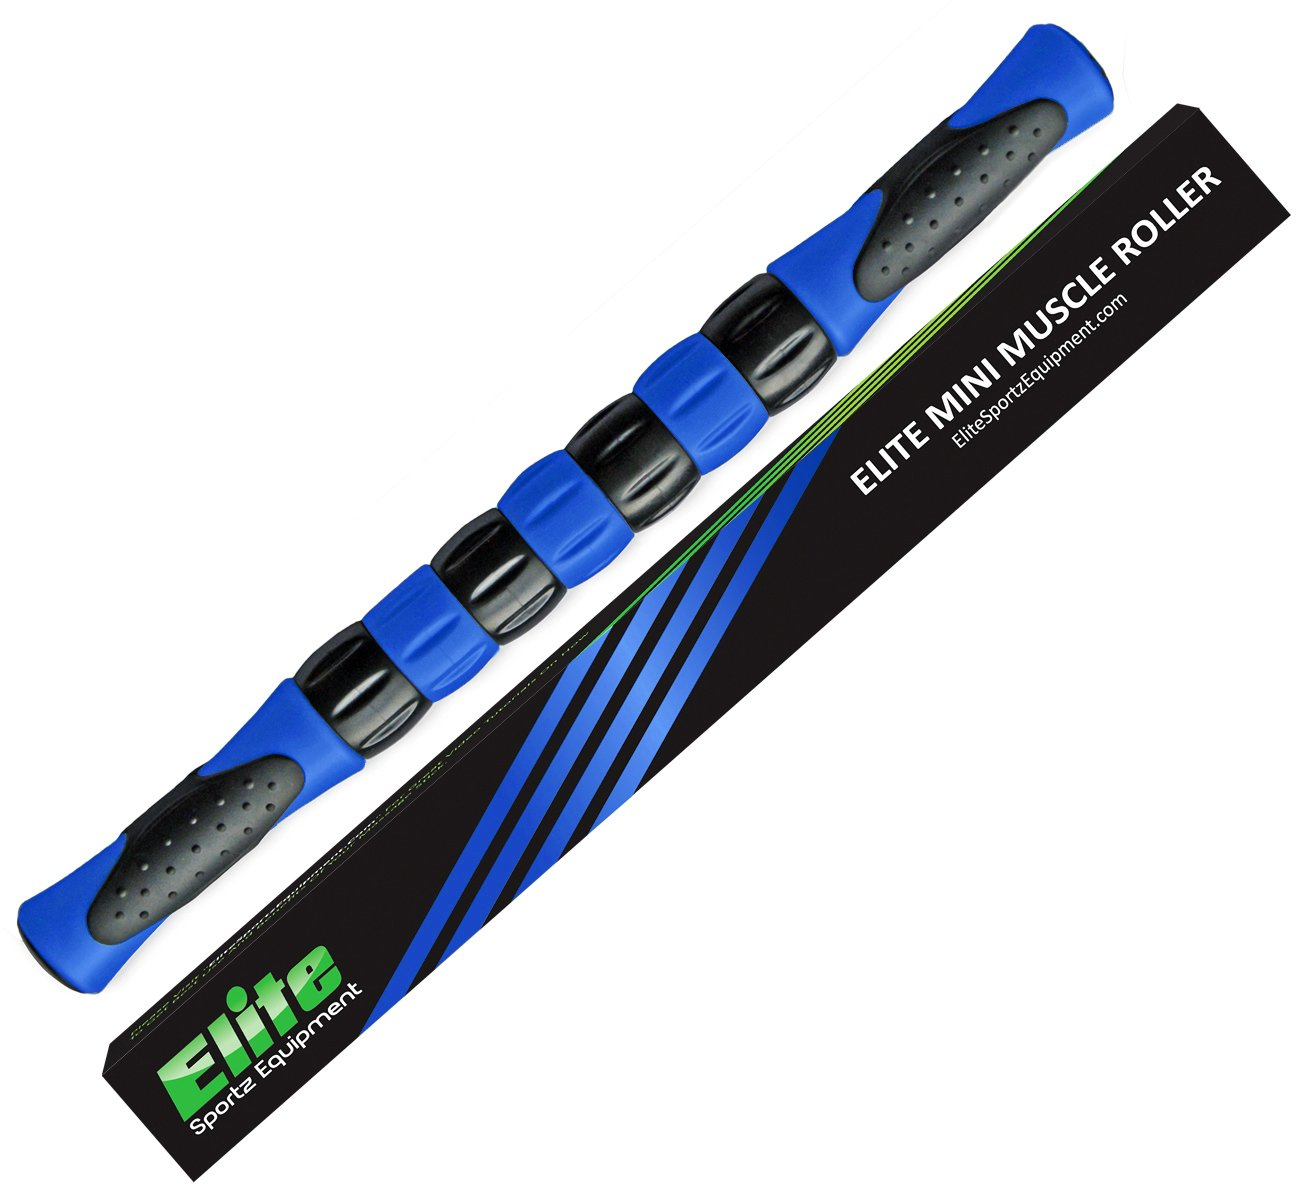 Elite Massage Muscle Roller Stick for Runners - Fast Muscle Relief from Sore and Tight Leg Muscles and Cramping. Five Bright Colors to Choose From.